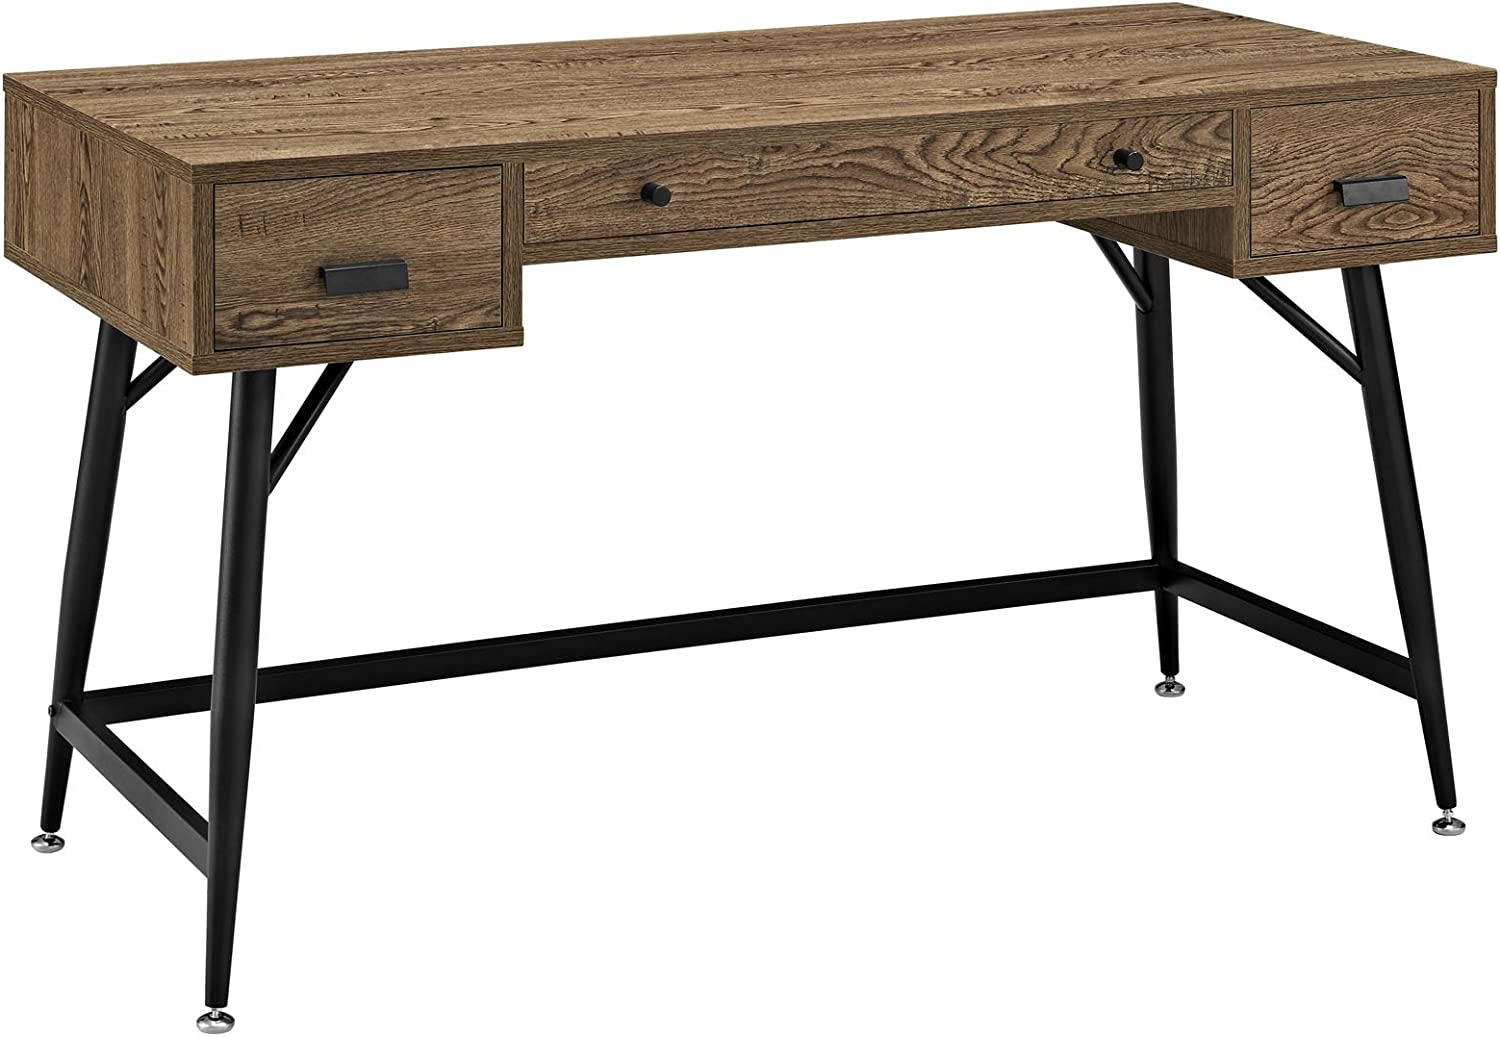 Modway Surplus Wood Grain and Metal Writing Office Desk With Storage Drawers In Walnut